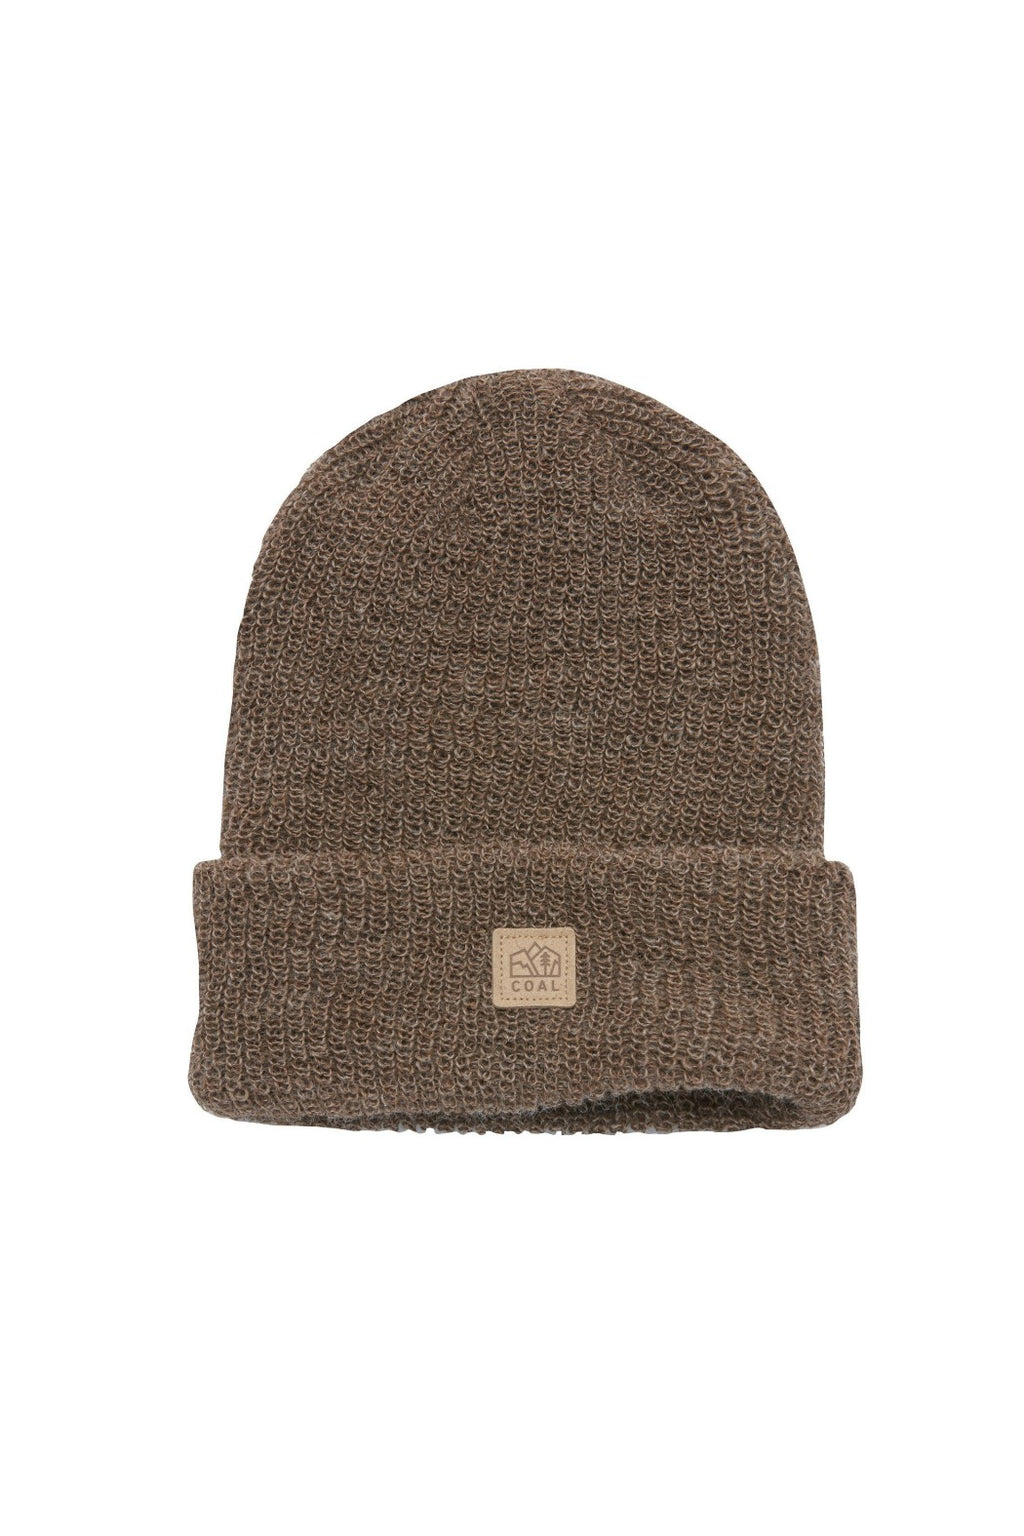 Coal Walden Beanie - Brown